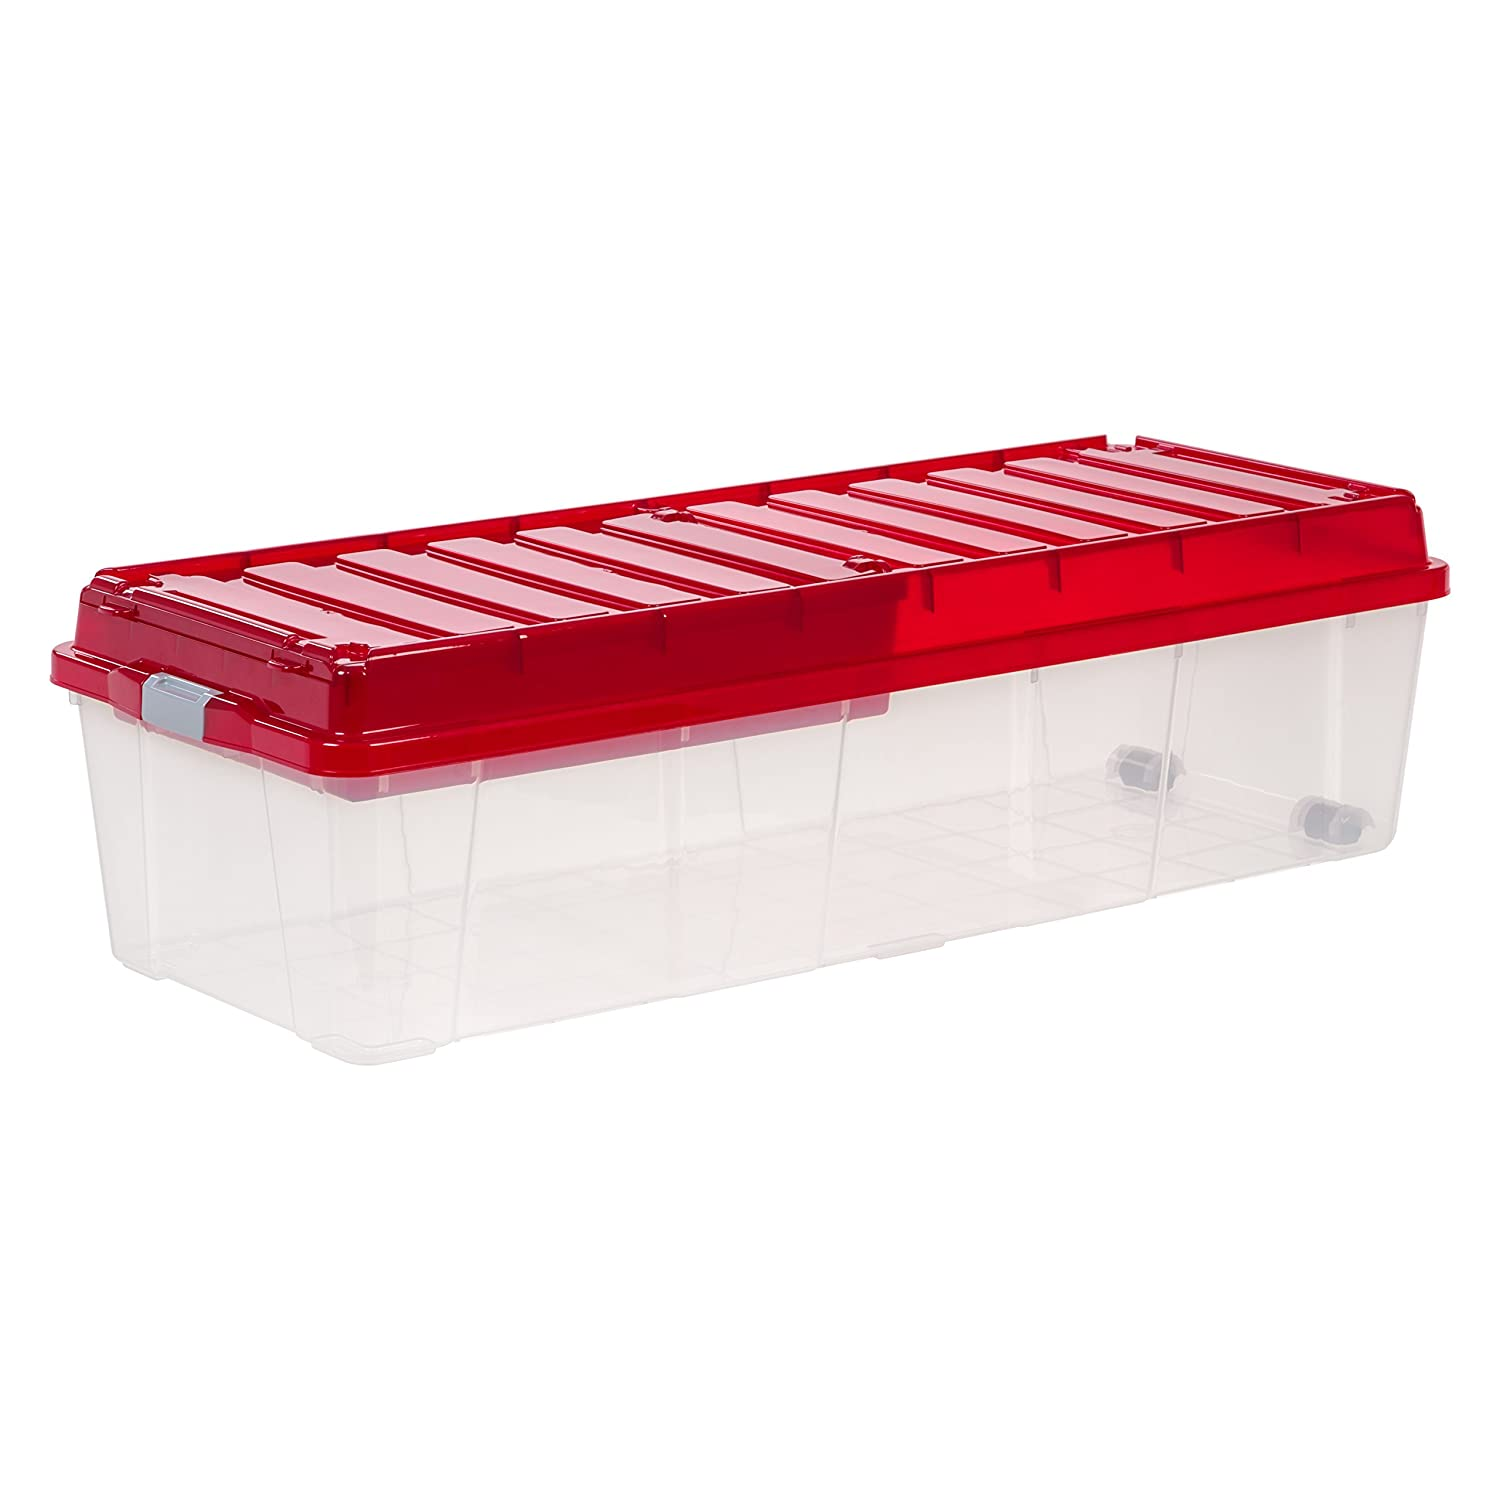 Amazon.com: IRIS Tree Storage Box, Red: Home & Kitchen